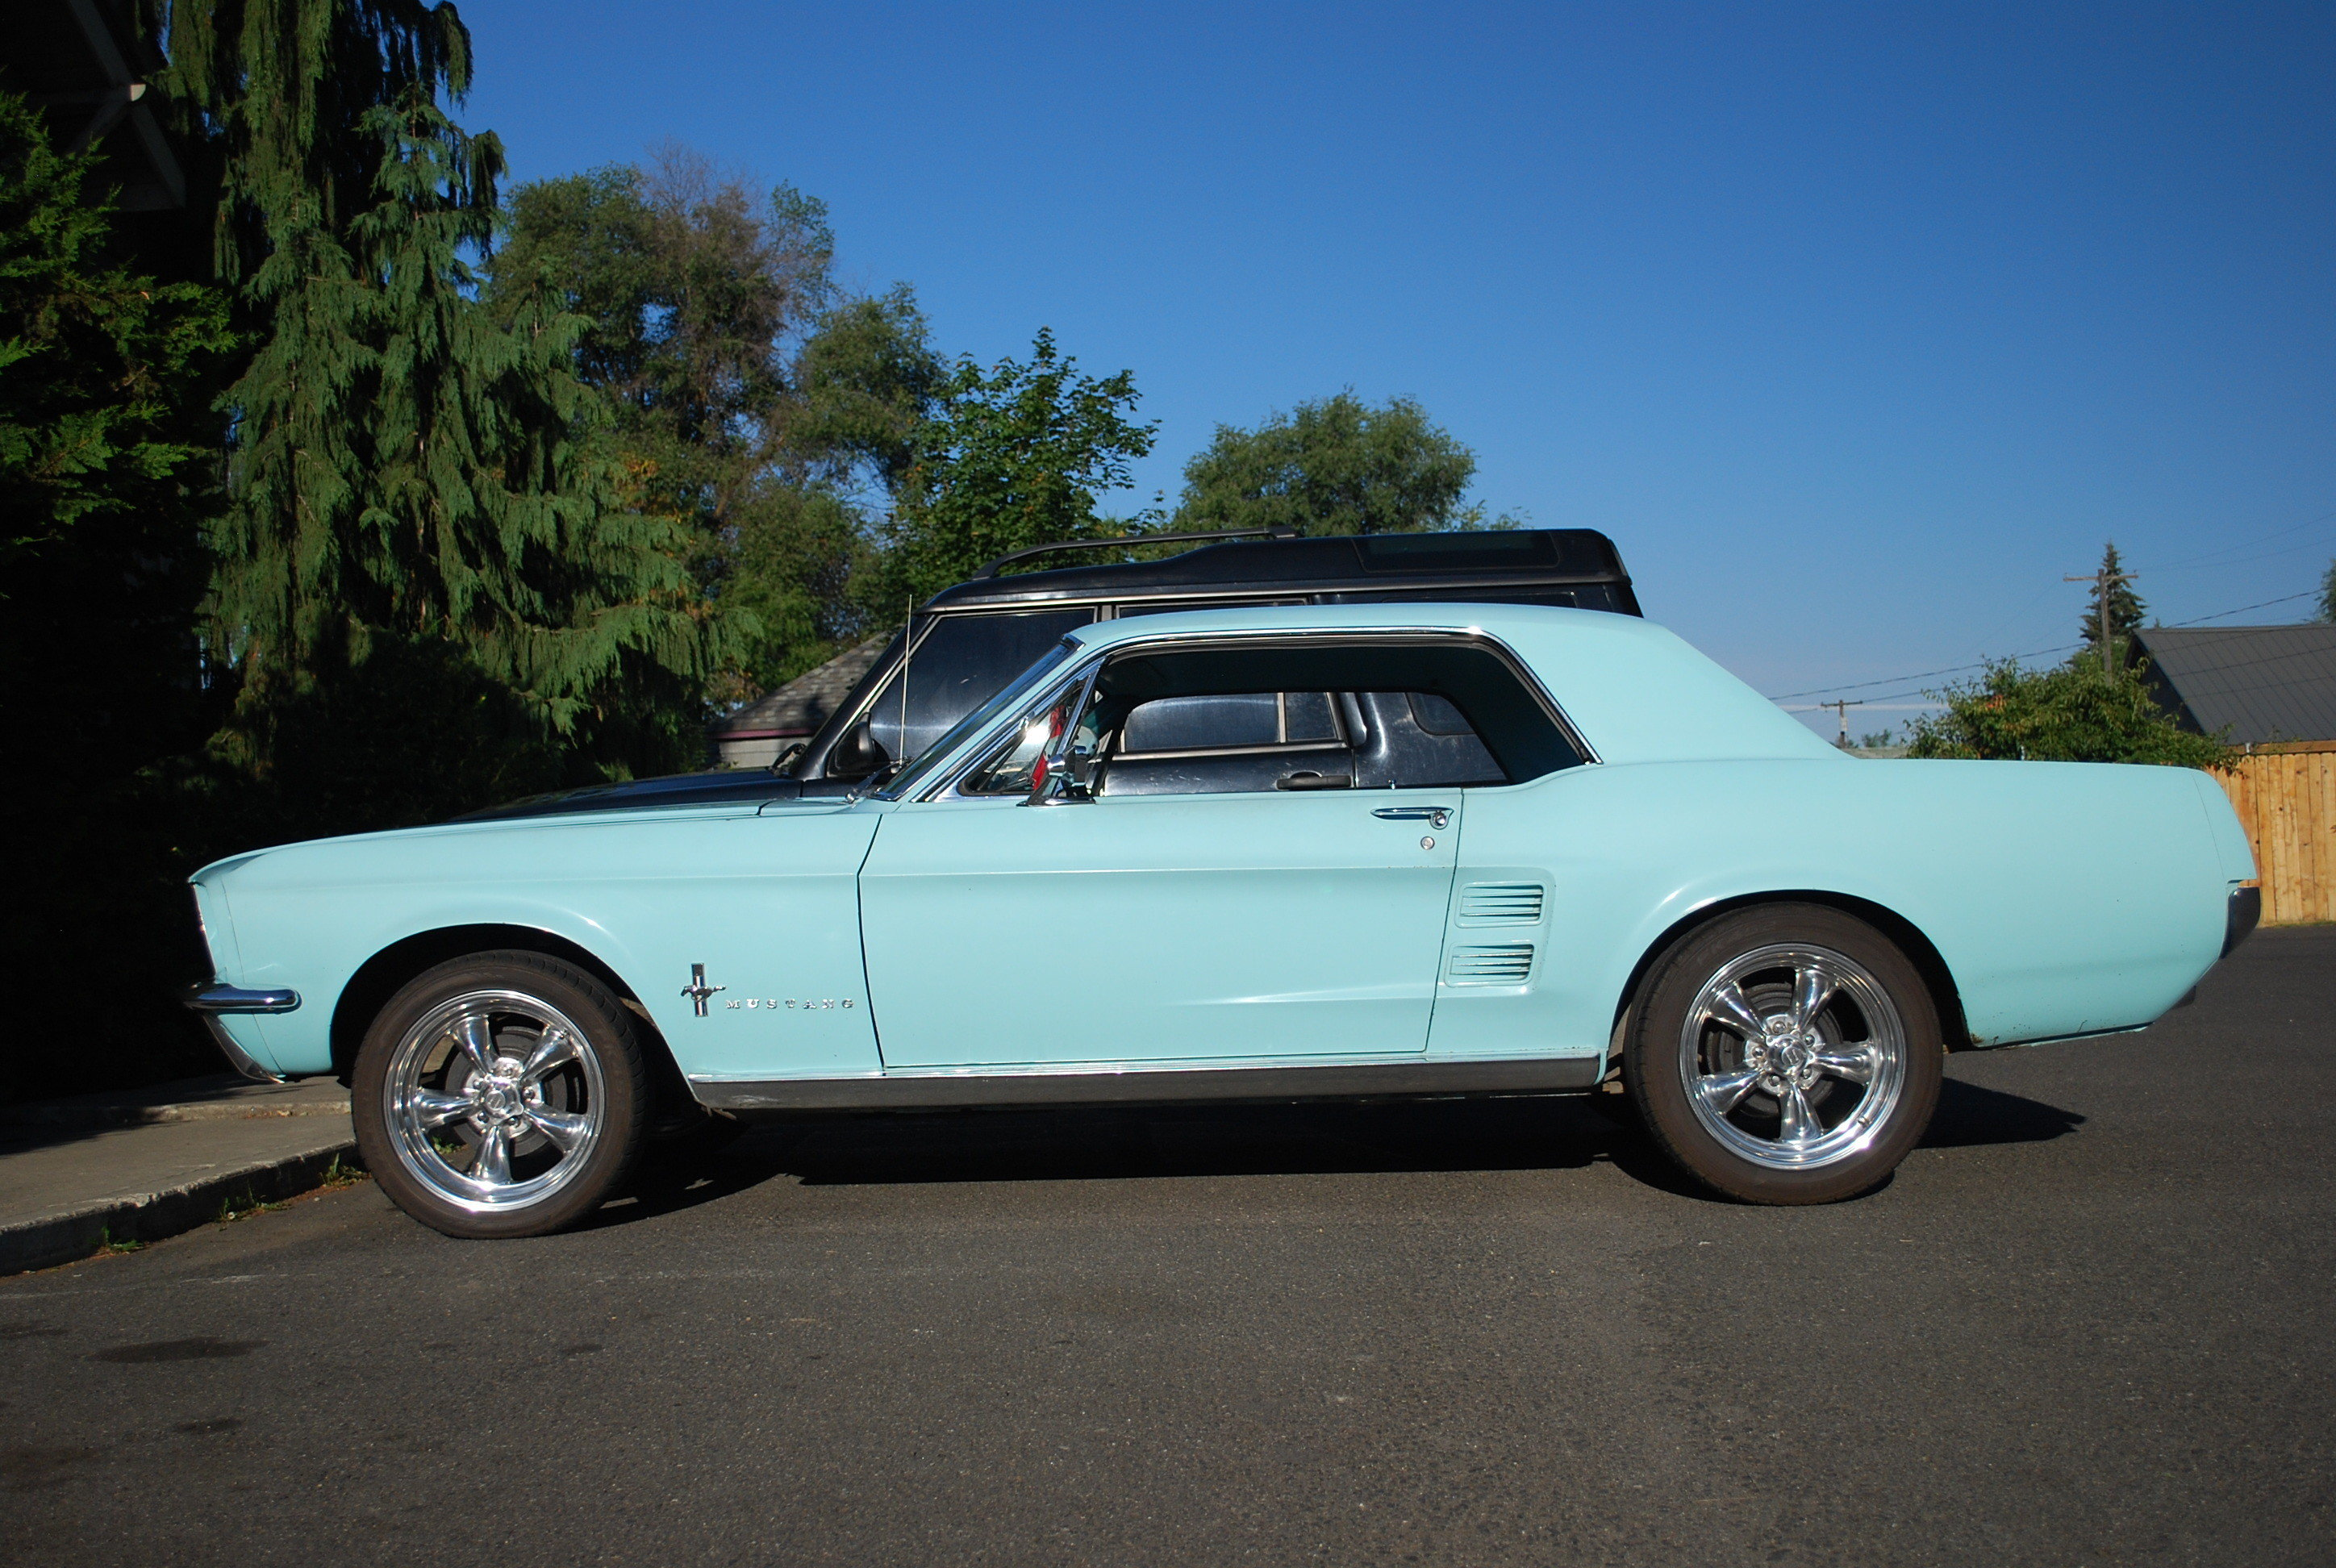 My First Classic Car - My 1967 Mustang